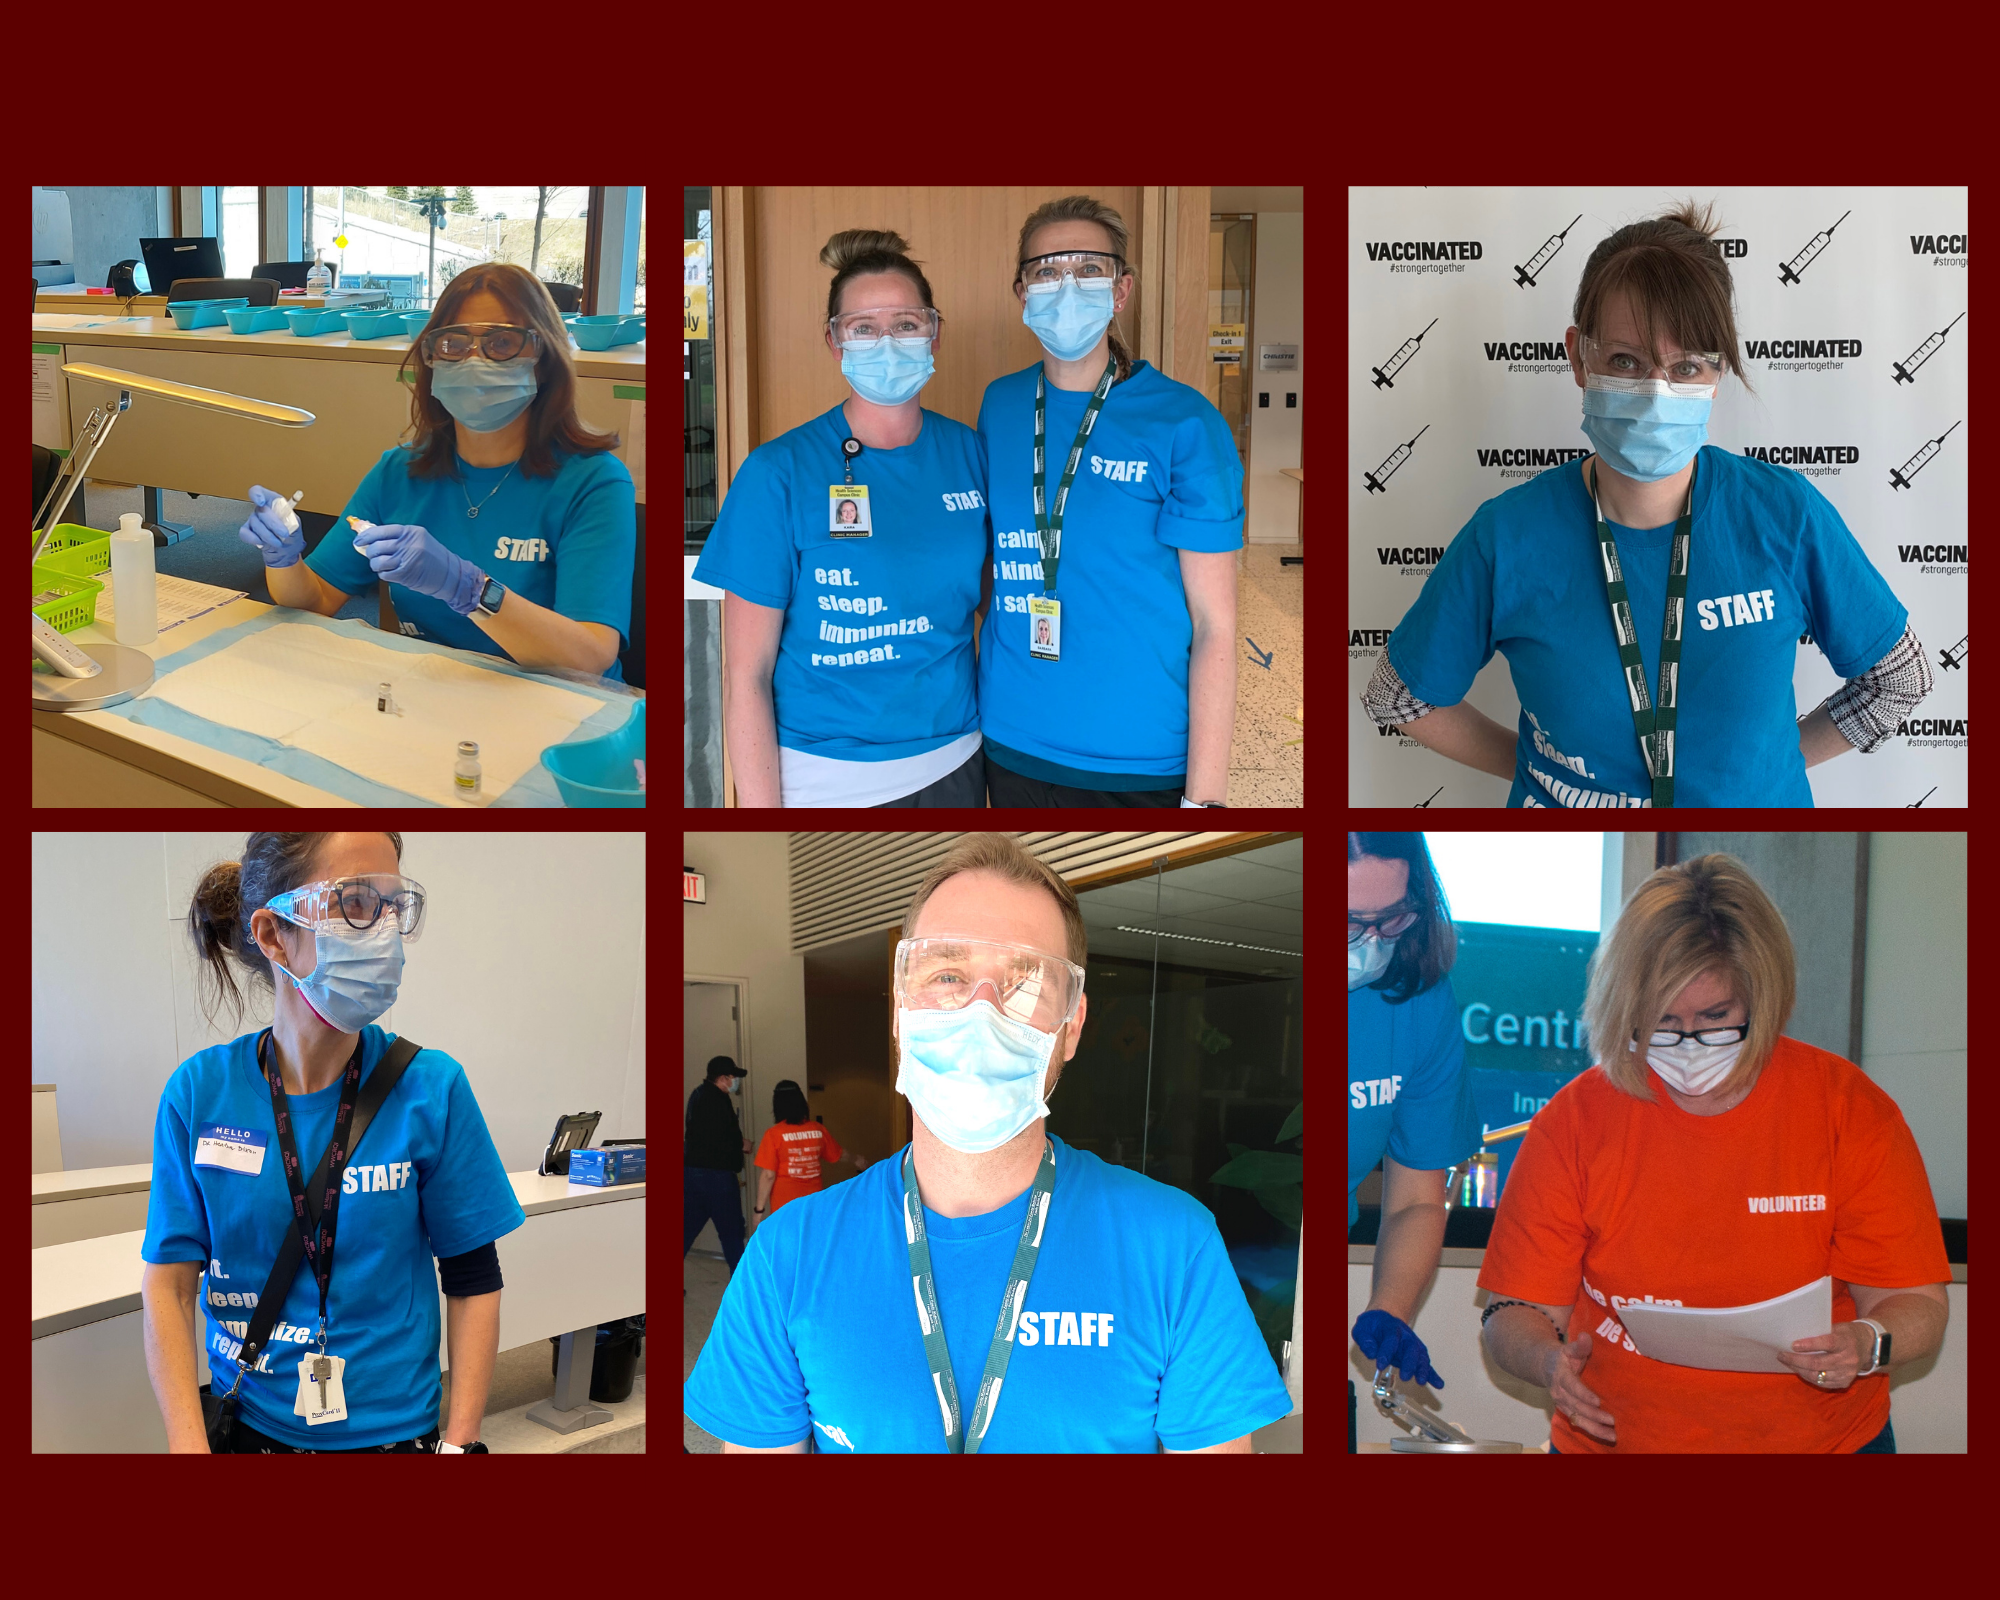 Members of the clinic team wearing staff and volunteer shirts and PPE